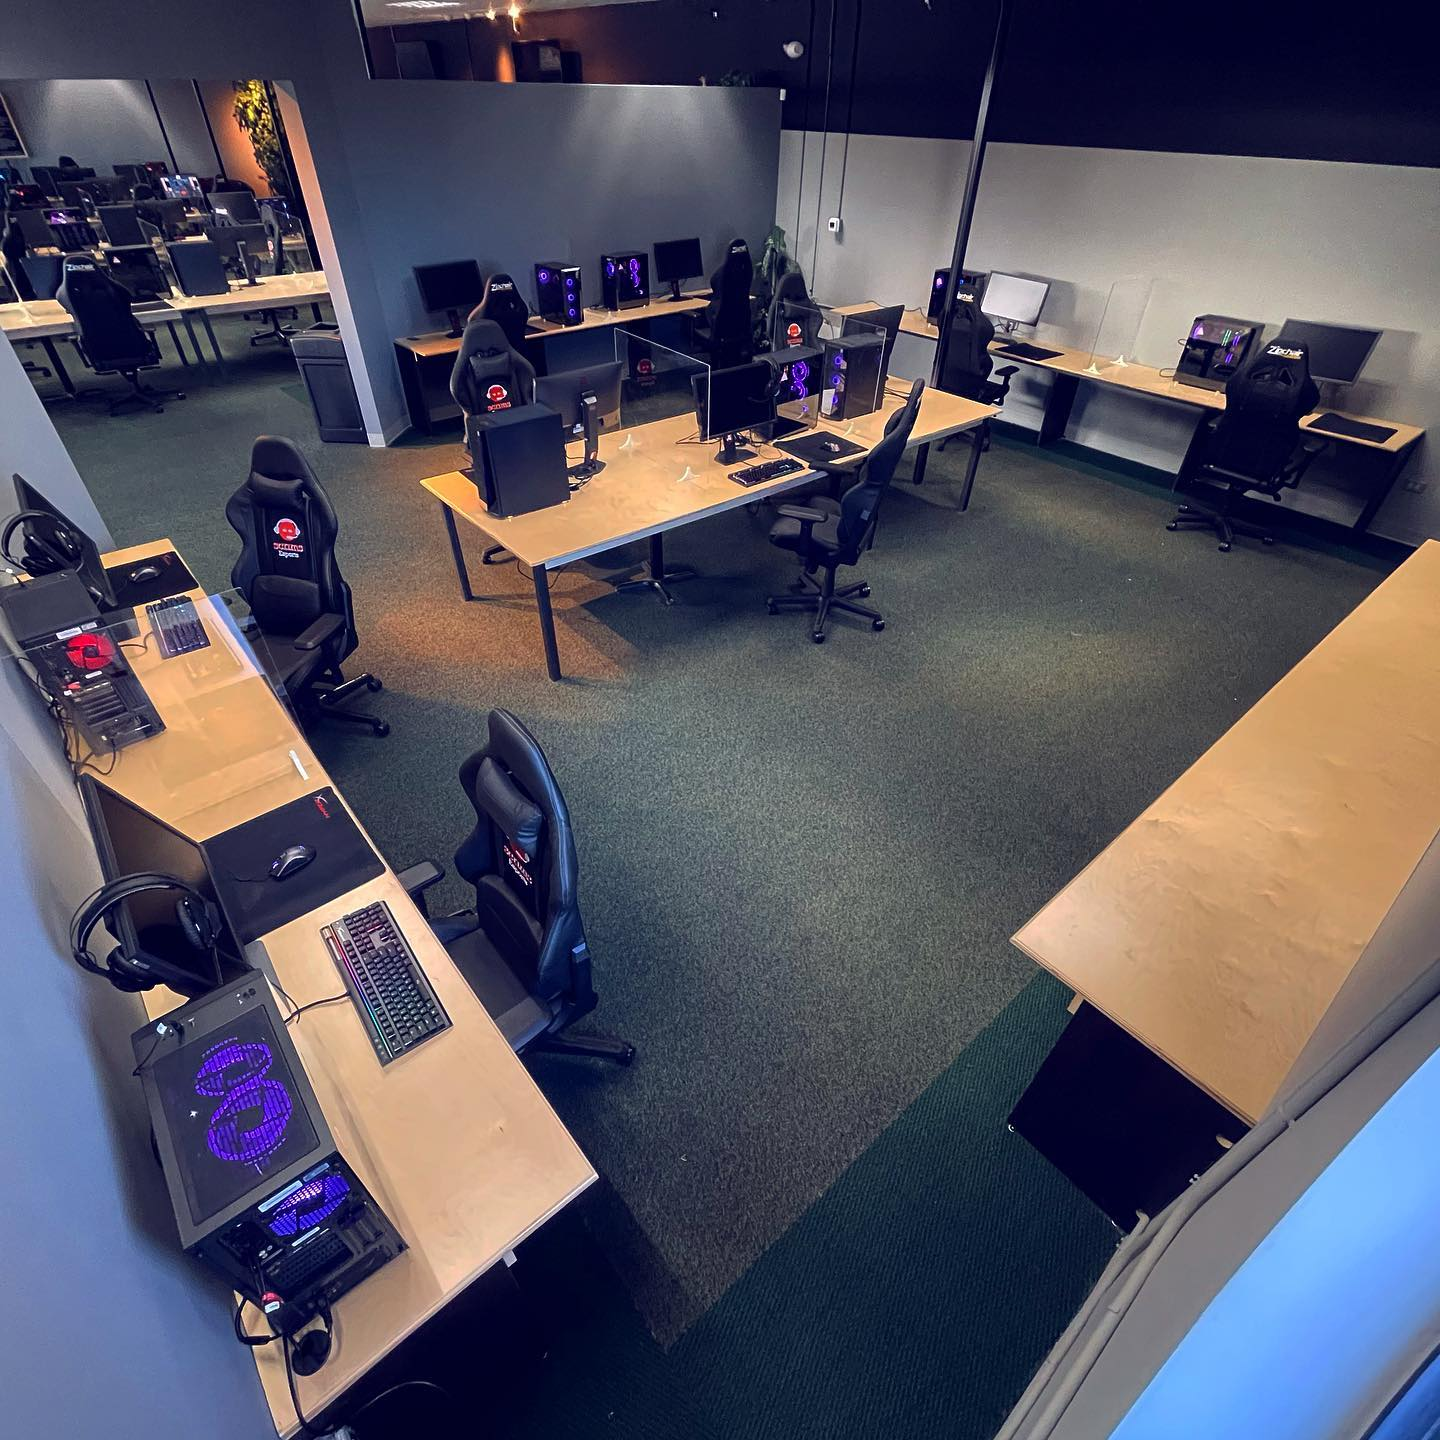 Private rooms can be used for various gaming or non-gaming events